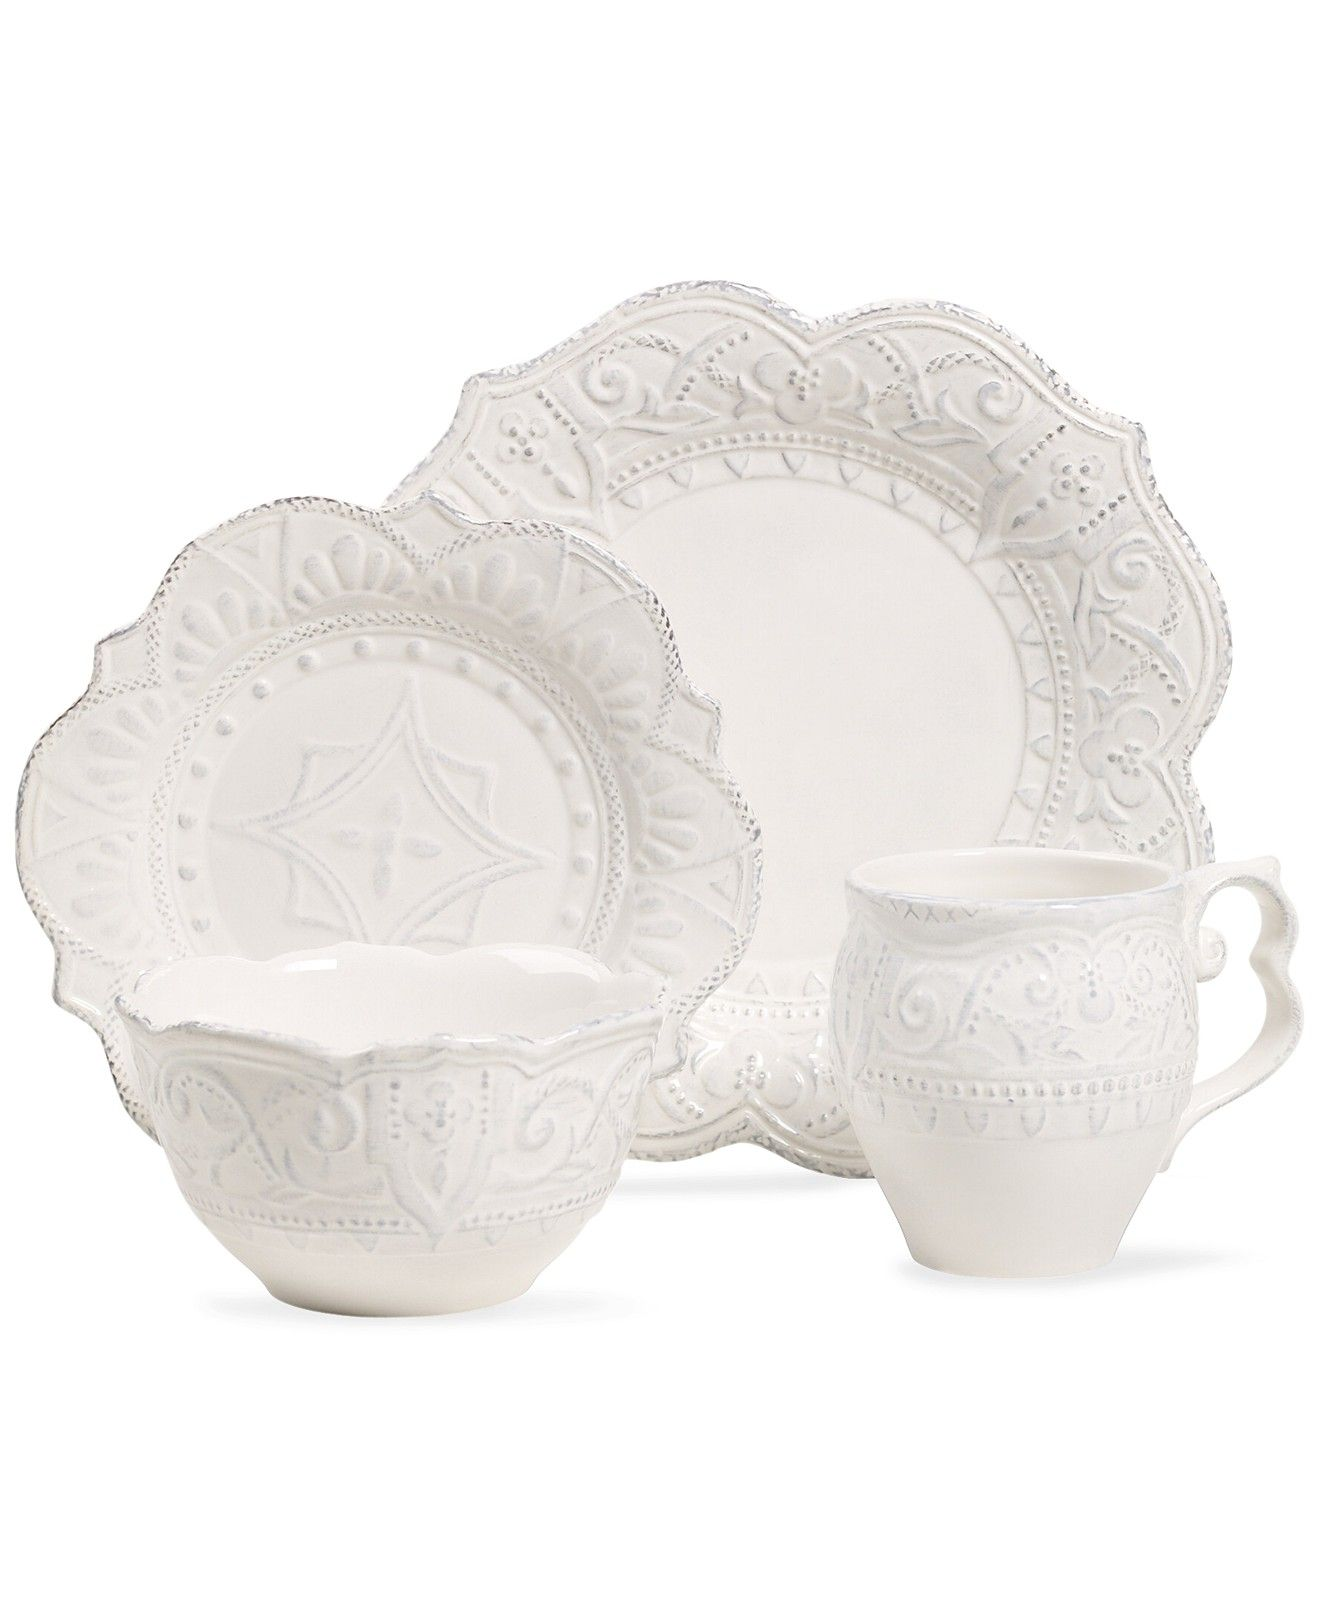 Maison Versailles Blanc Amelie Collection - Dinnerware - Dining \u0026 Entertaining - Macy\u0027s  sc 1 st  Pinterest & Maison Versailles Blanc Amelie Collection | White dishes Amelie and ...